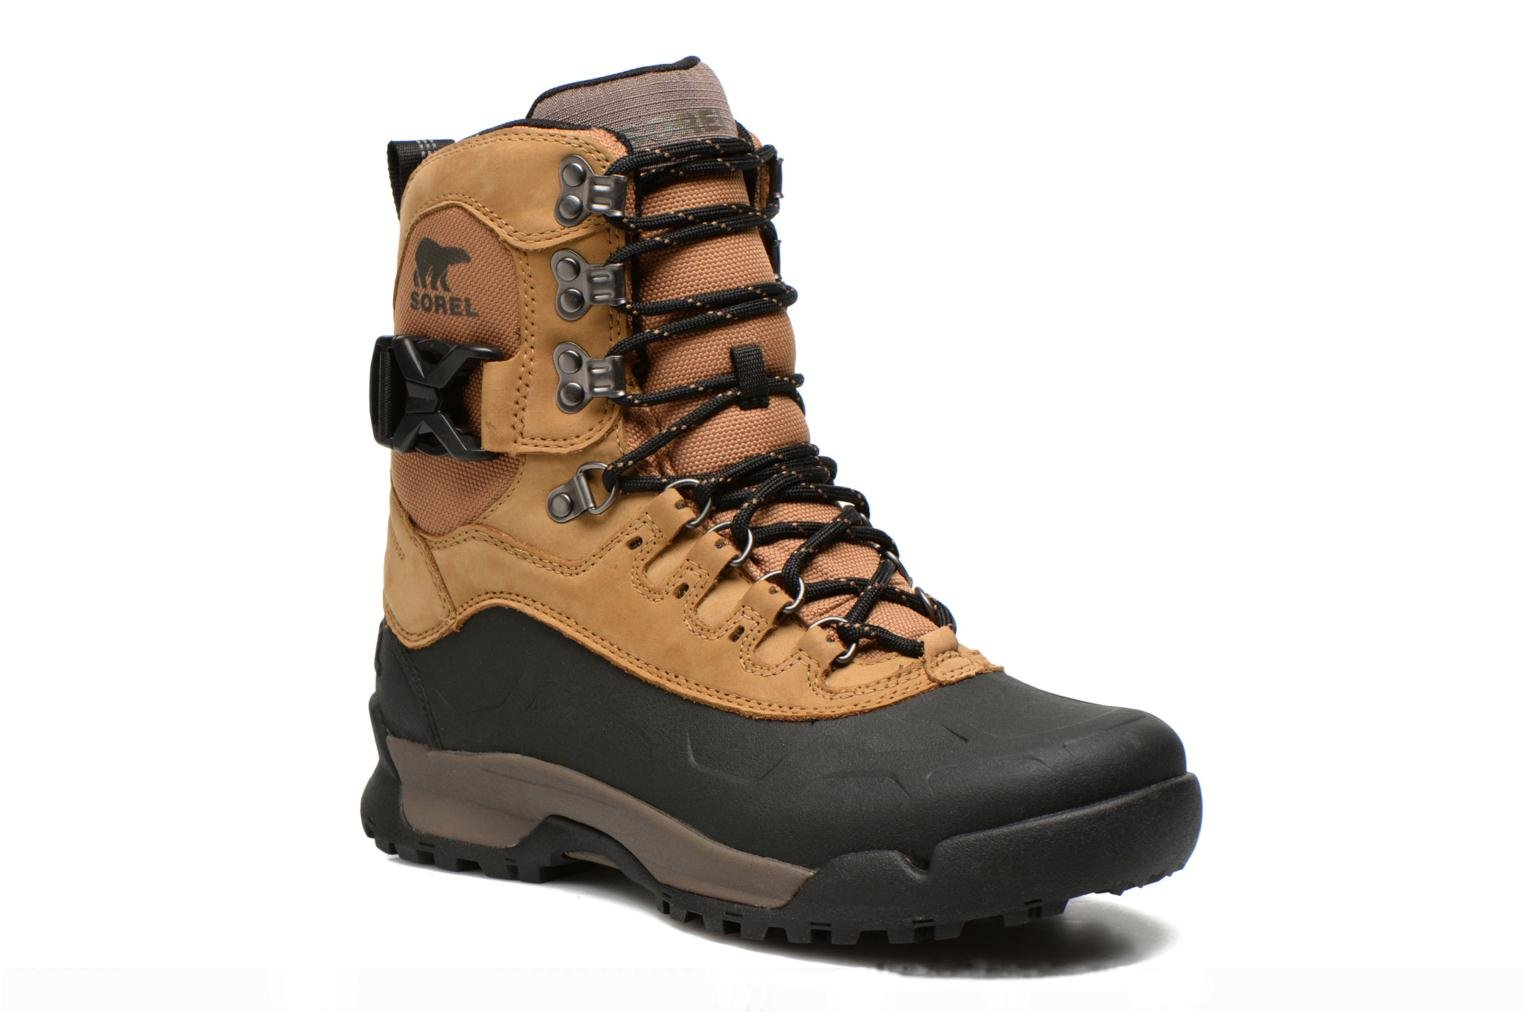 Boots Sorel Paxson Tall Waterproof hh0InDk2